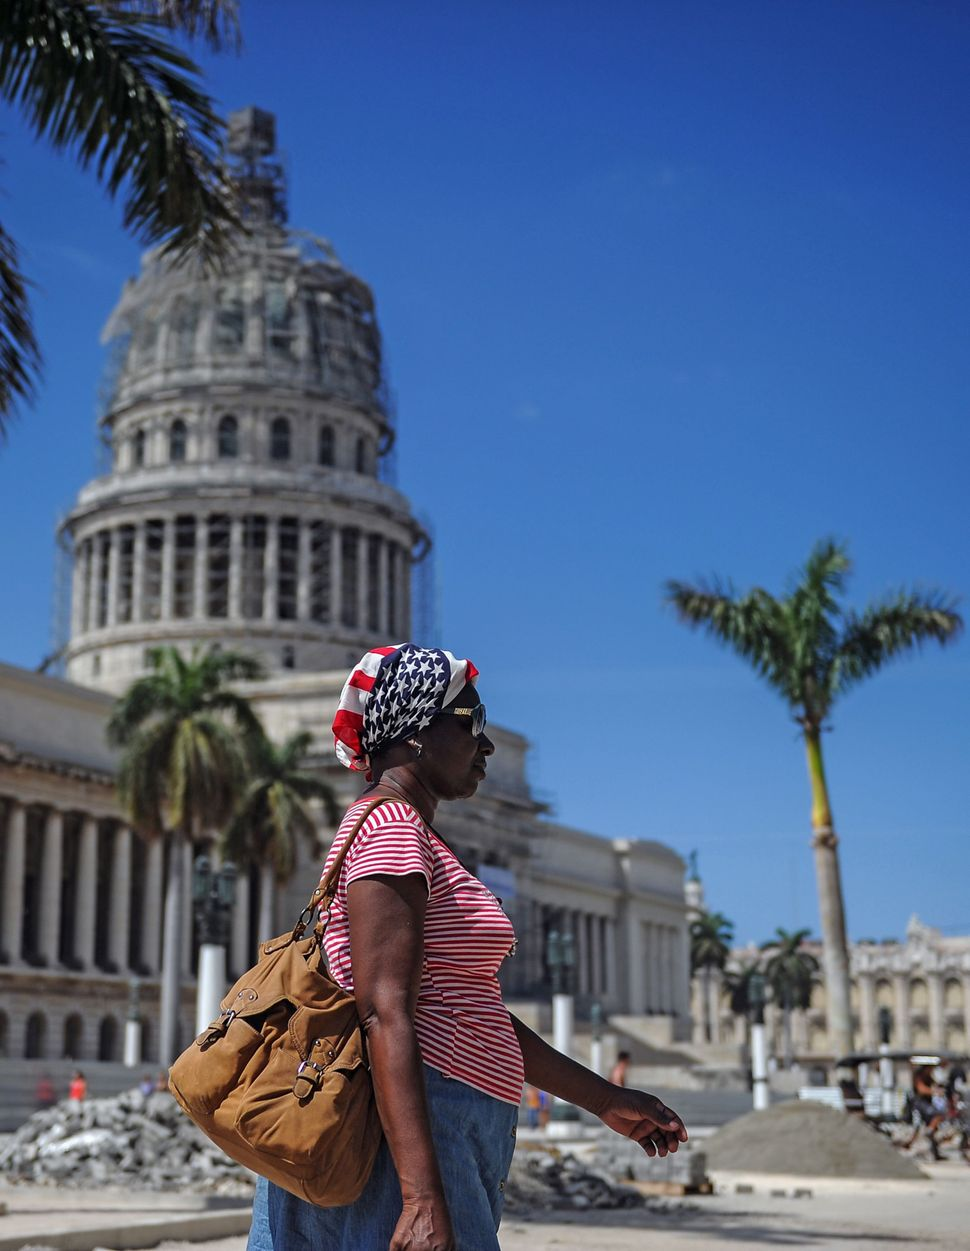 A woman wearing a headscarf in the colors of the U.S. flag walks near Havana's Capitol on March 15.